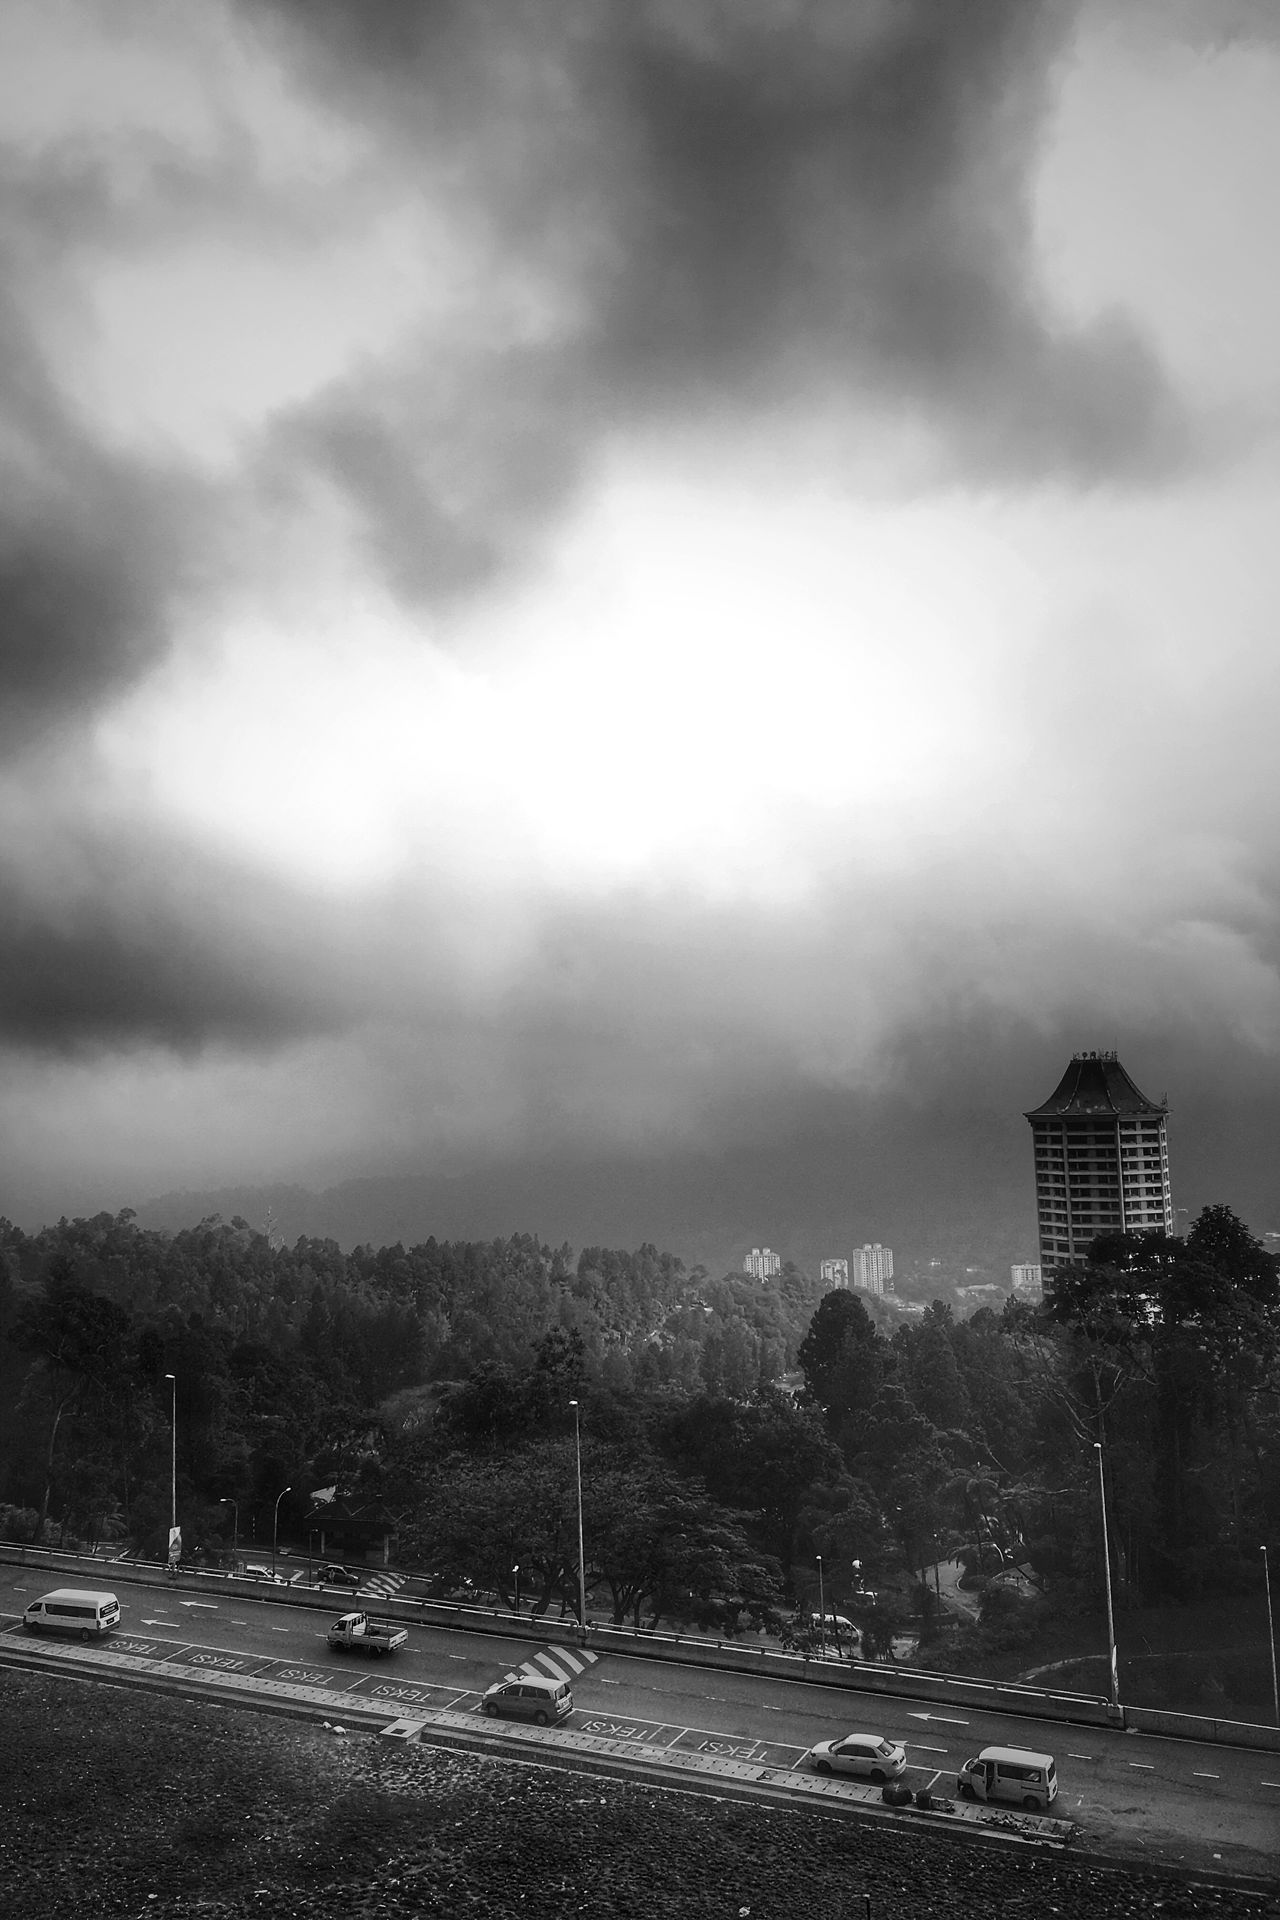 Road Transportation Car Sky Land Vehicle Cloud - Sky Street Outdoors Tree Day No People Road Sign Nature Genting Highlands Genting Highland Premium Outlet Built Structure Building Iphonephoto Iosphoto Working Black And White Breathing Space